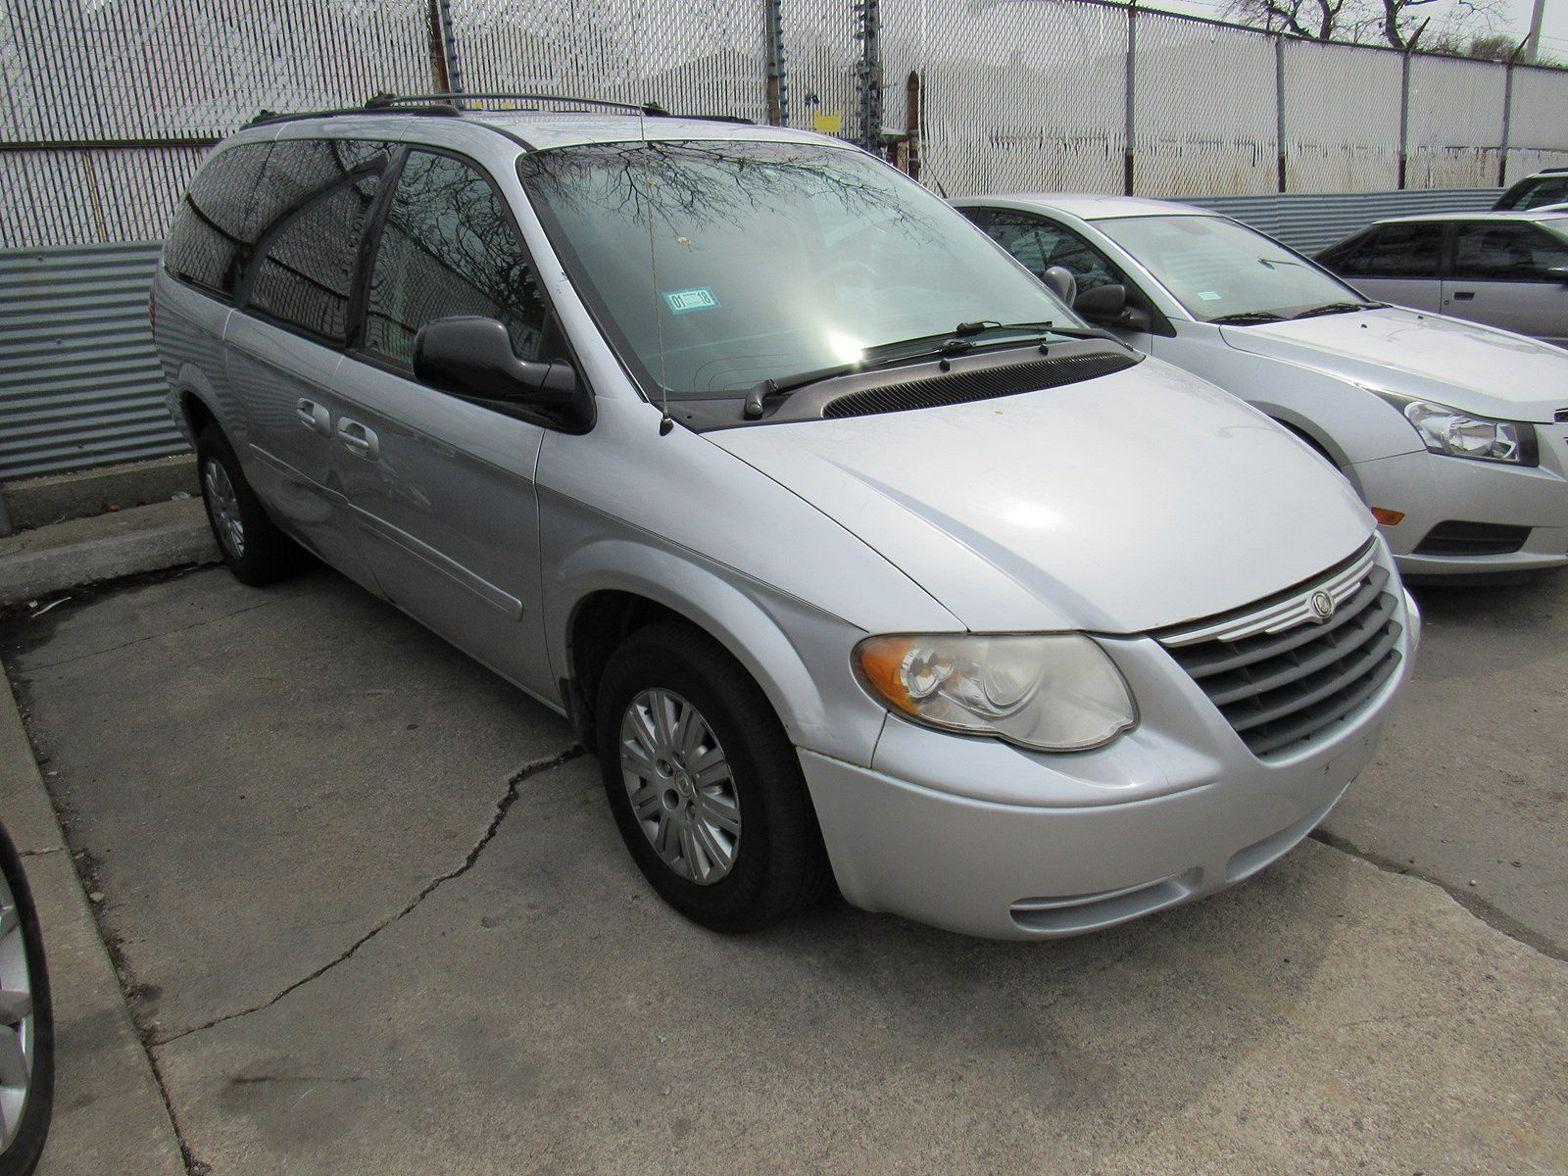 2006 Chrysler Town & Country $500